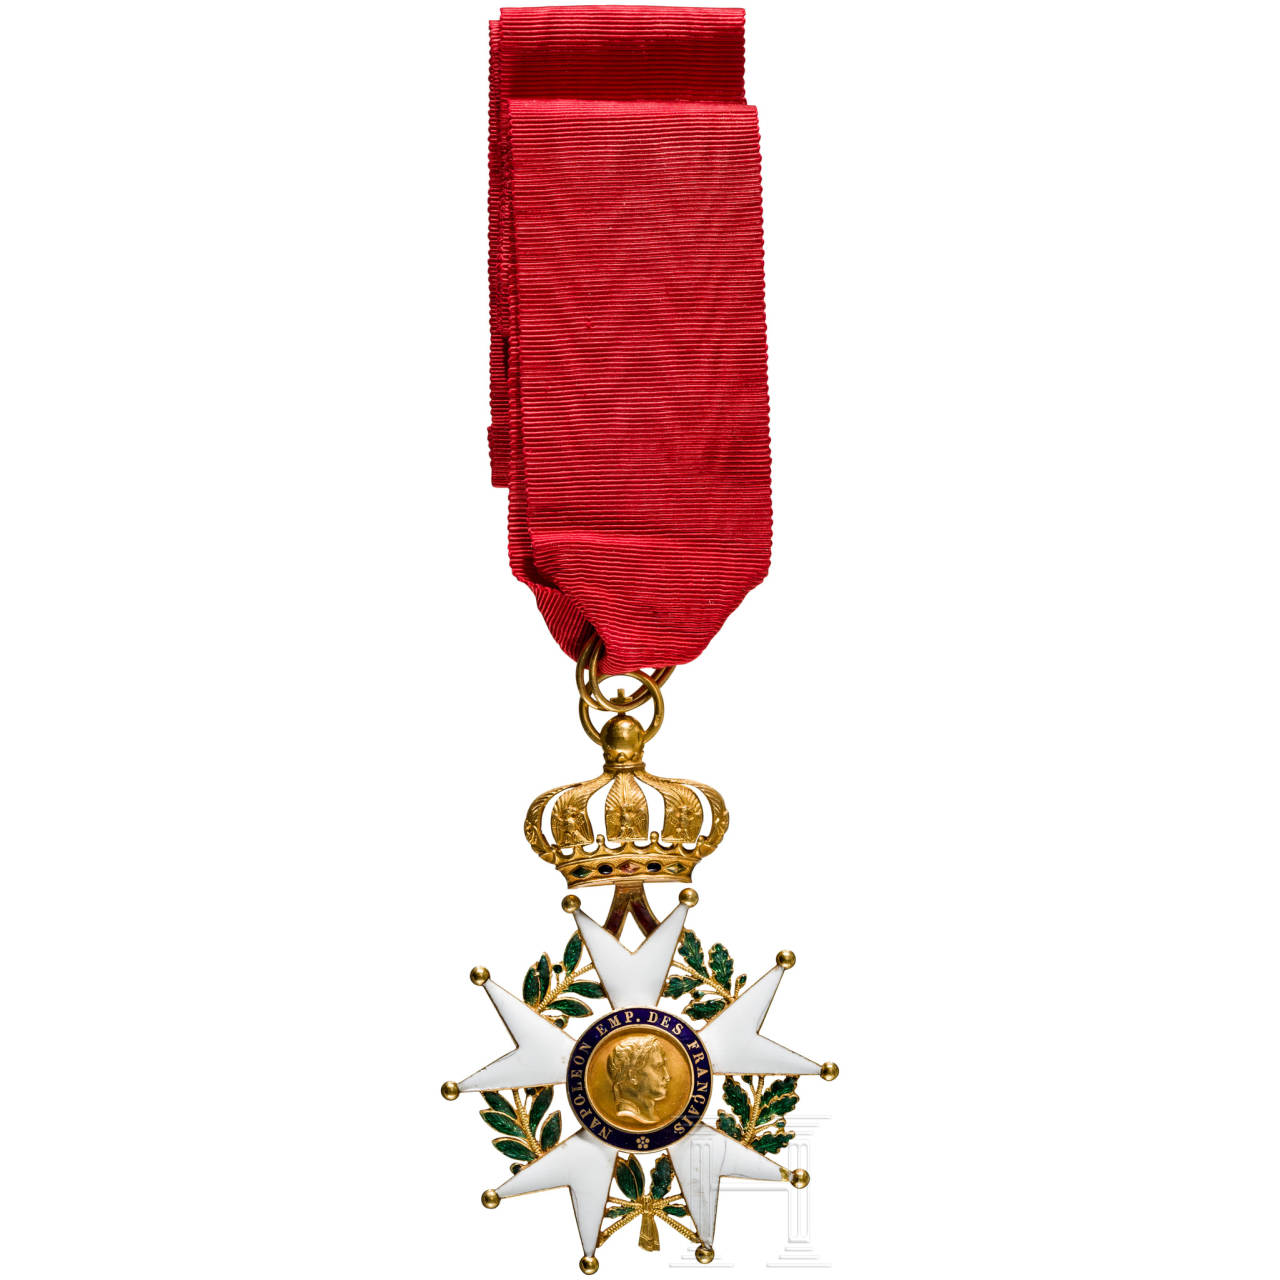 Order of the Legion of Honour - a commander's cross of the Second Empire